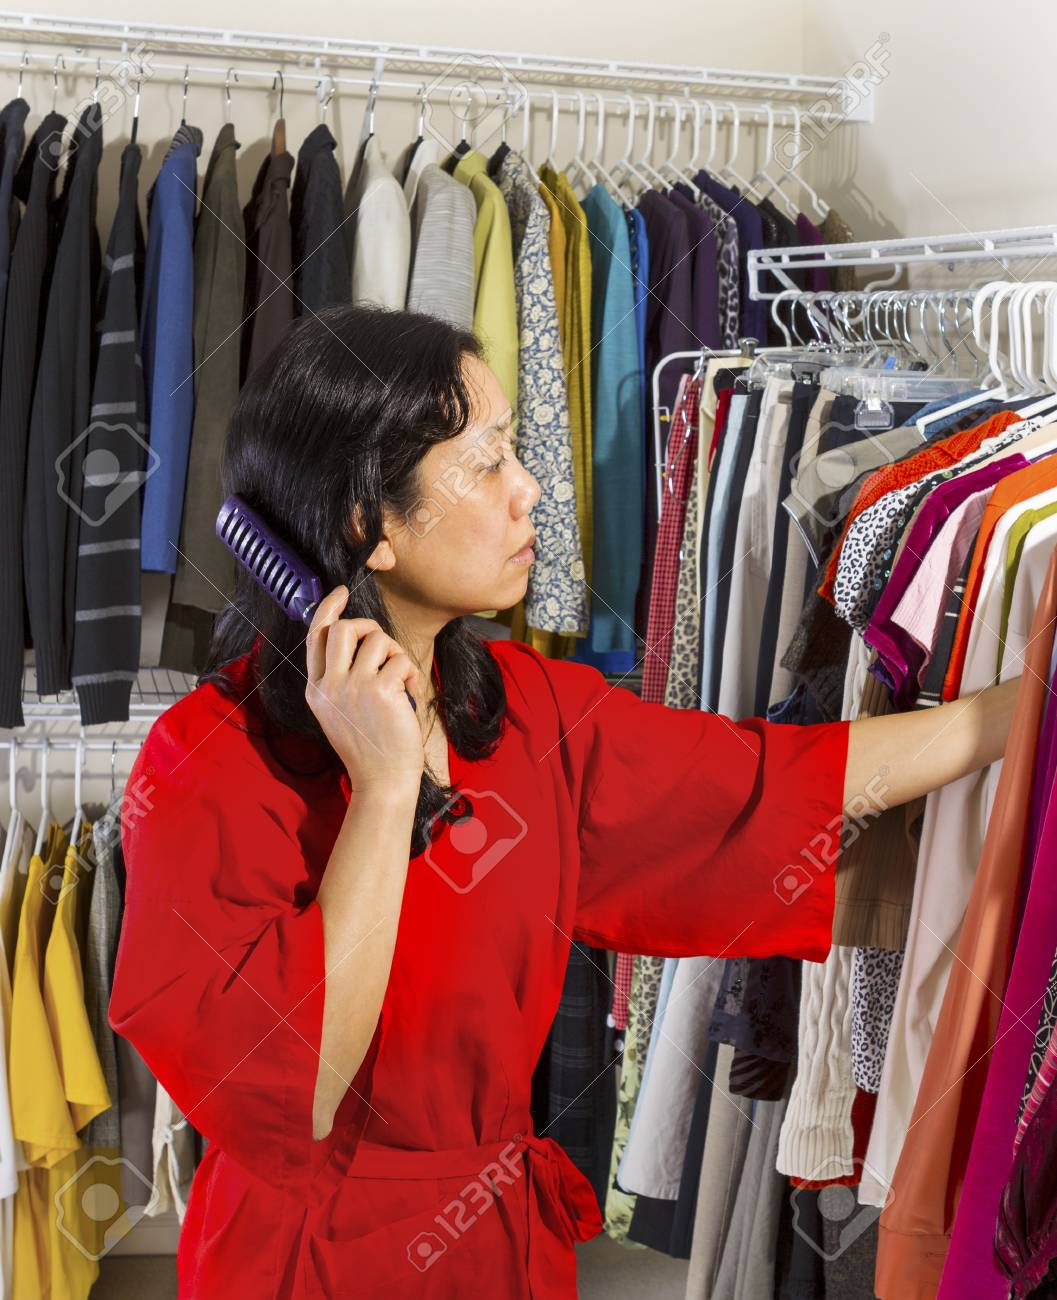 Vertical portrait of mature Asian woman, dressed in red bath robe, in walk-in closet combing her hair while looking at her hanging clothes Stock Photo - 17538640